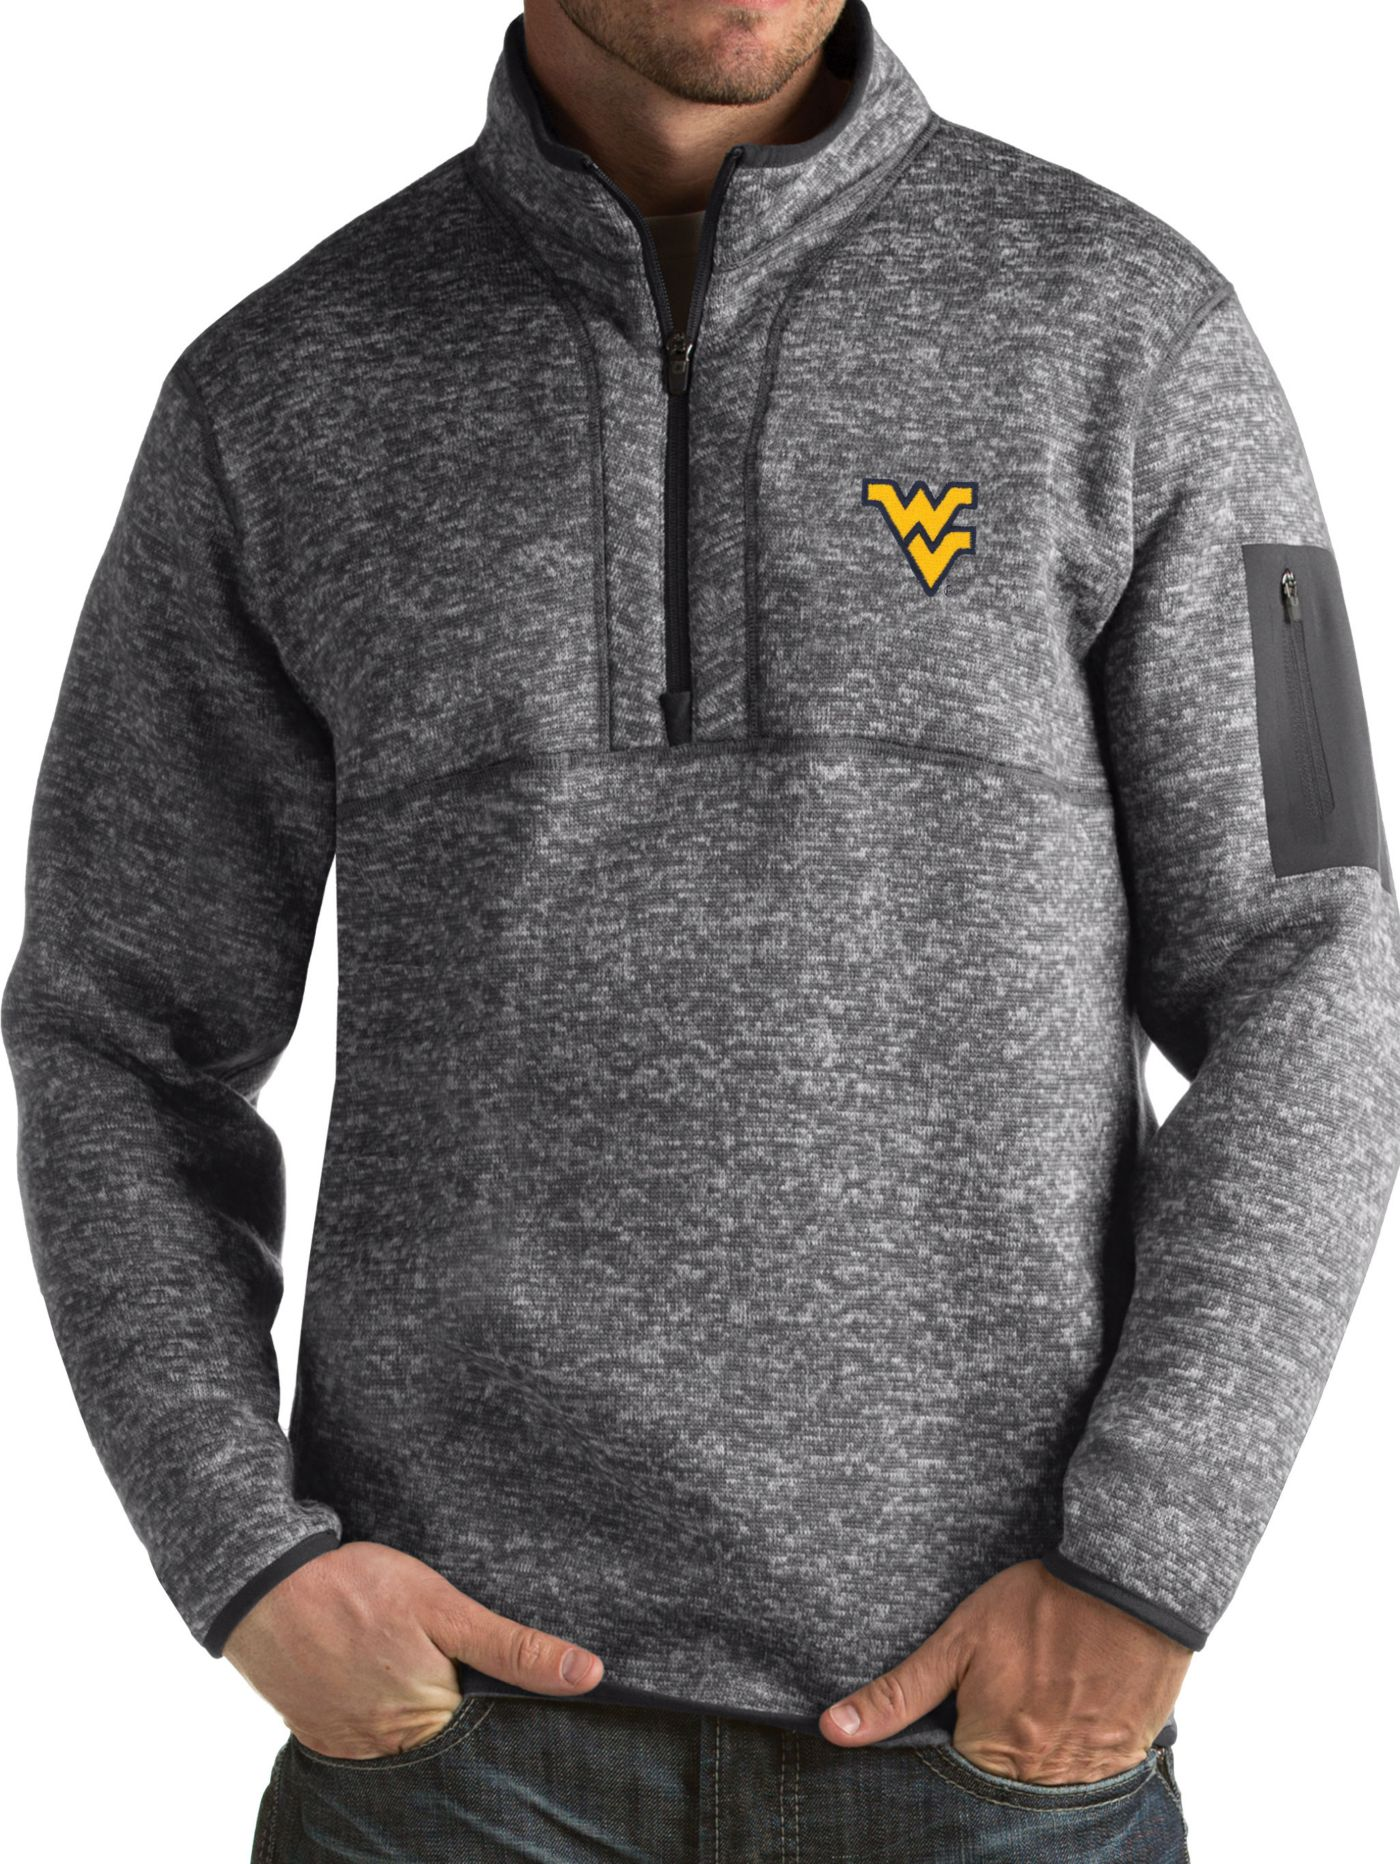 Antigua Men's West Virginia Mountaineers Grey Fortune Pullover Jacket